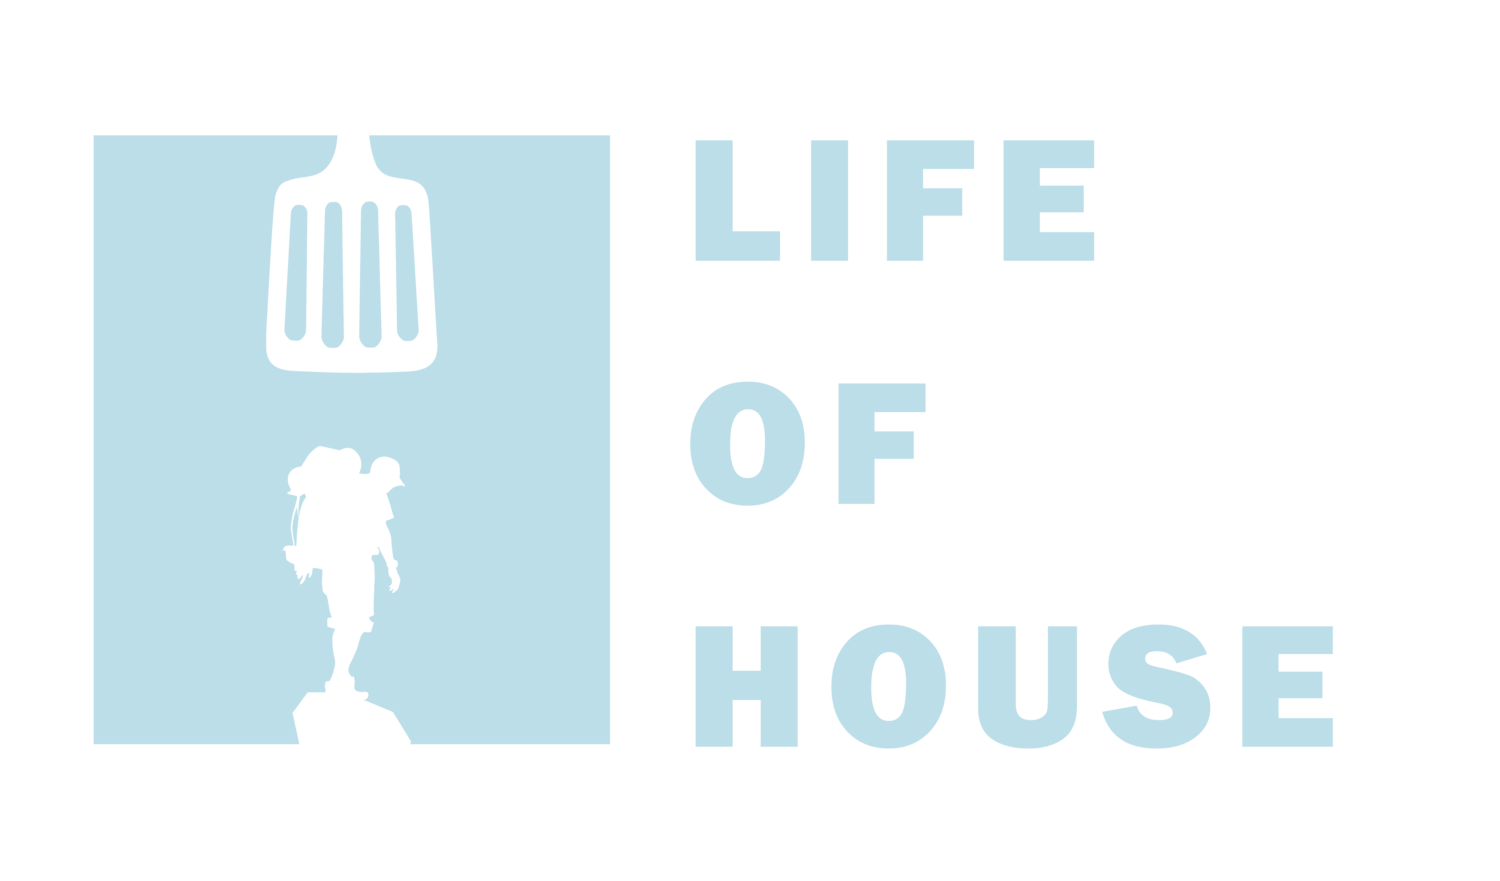 Life of House